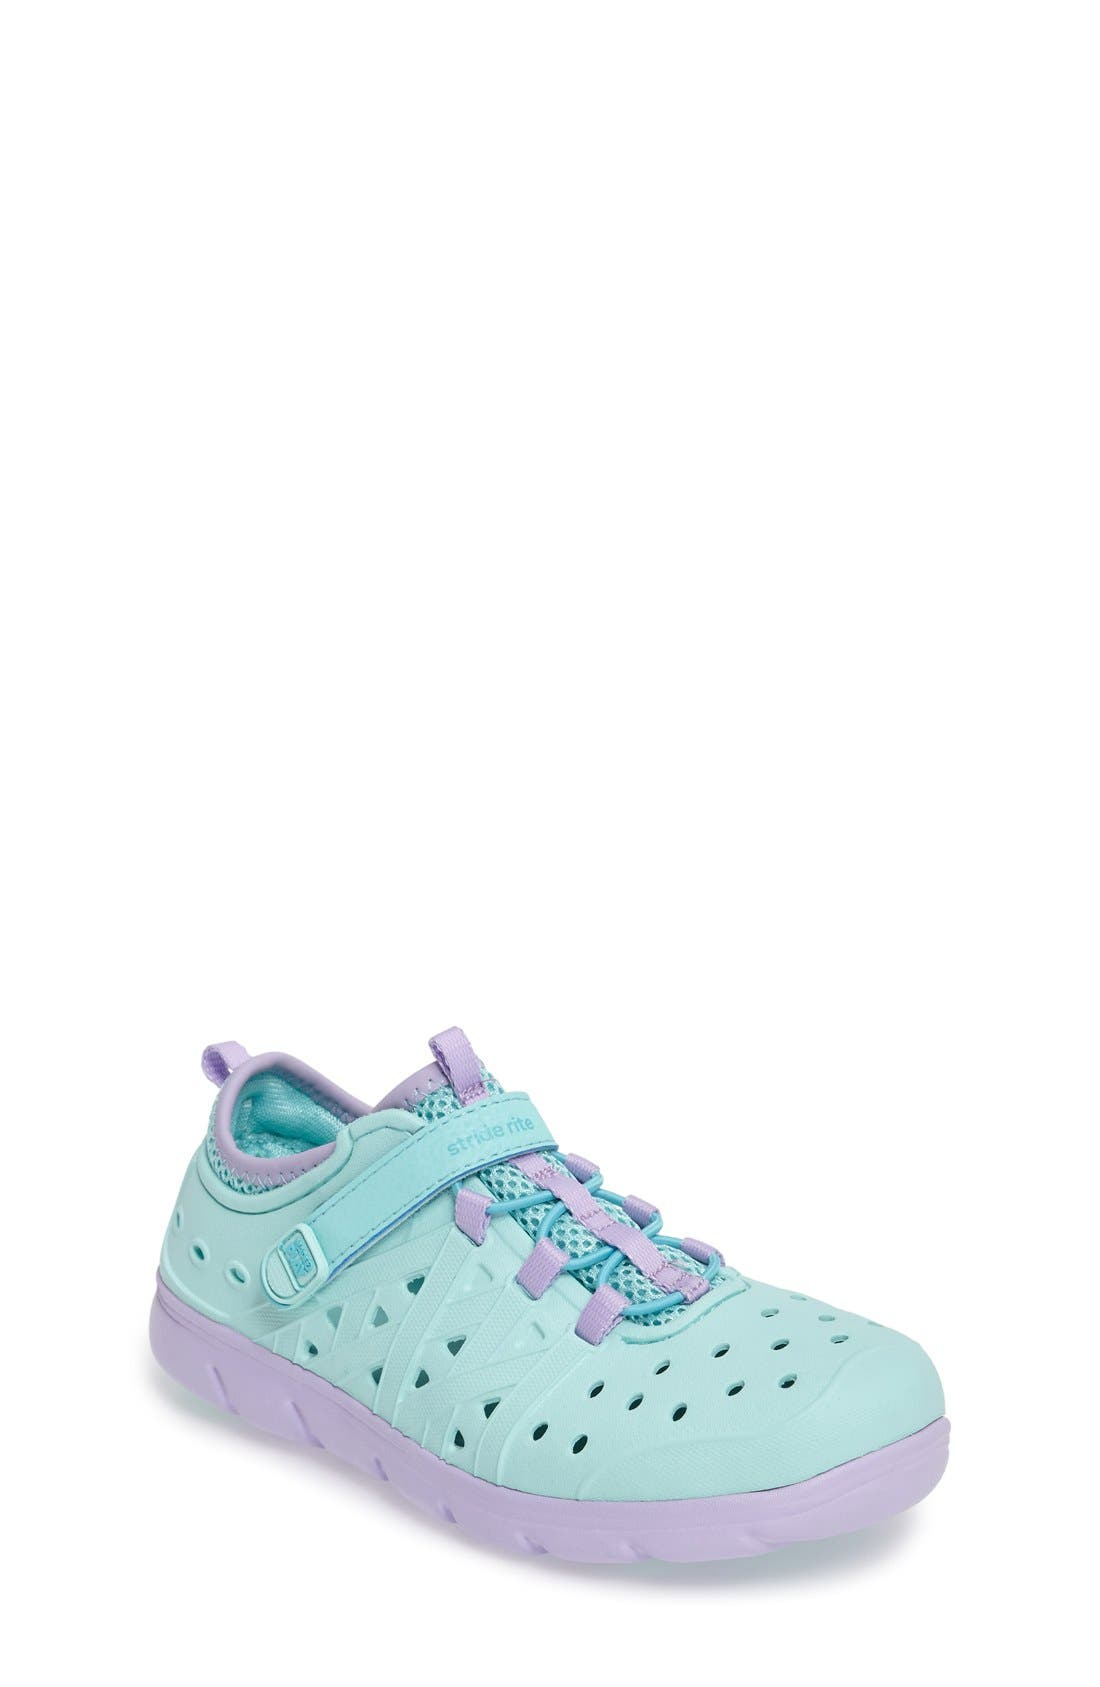 Made2Play<sup>®</sup> Phibian Sneaker,                         Main,                         color, Turquoise